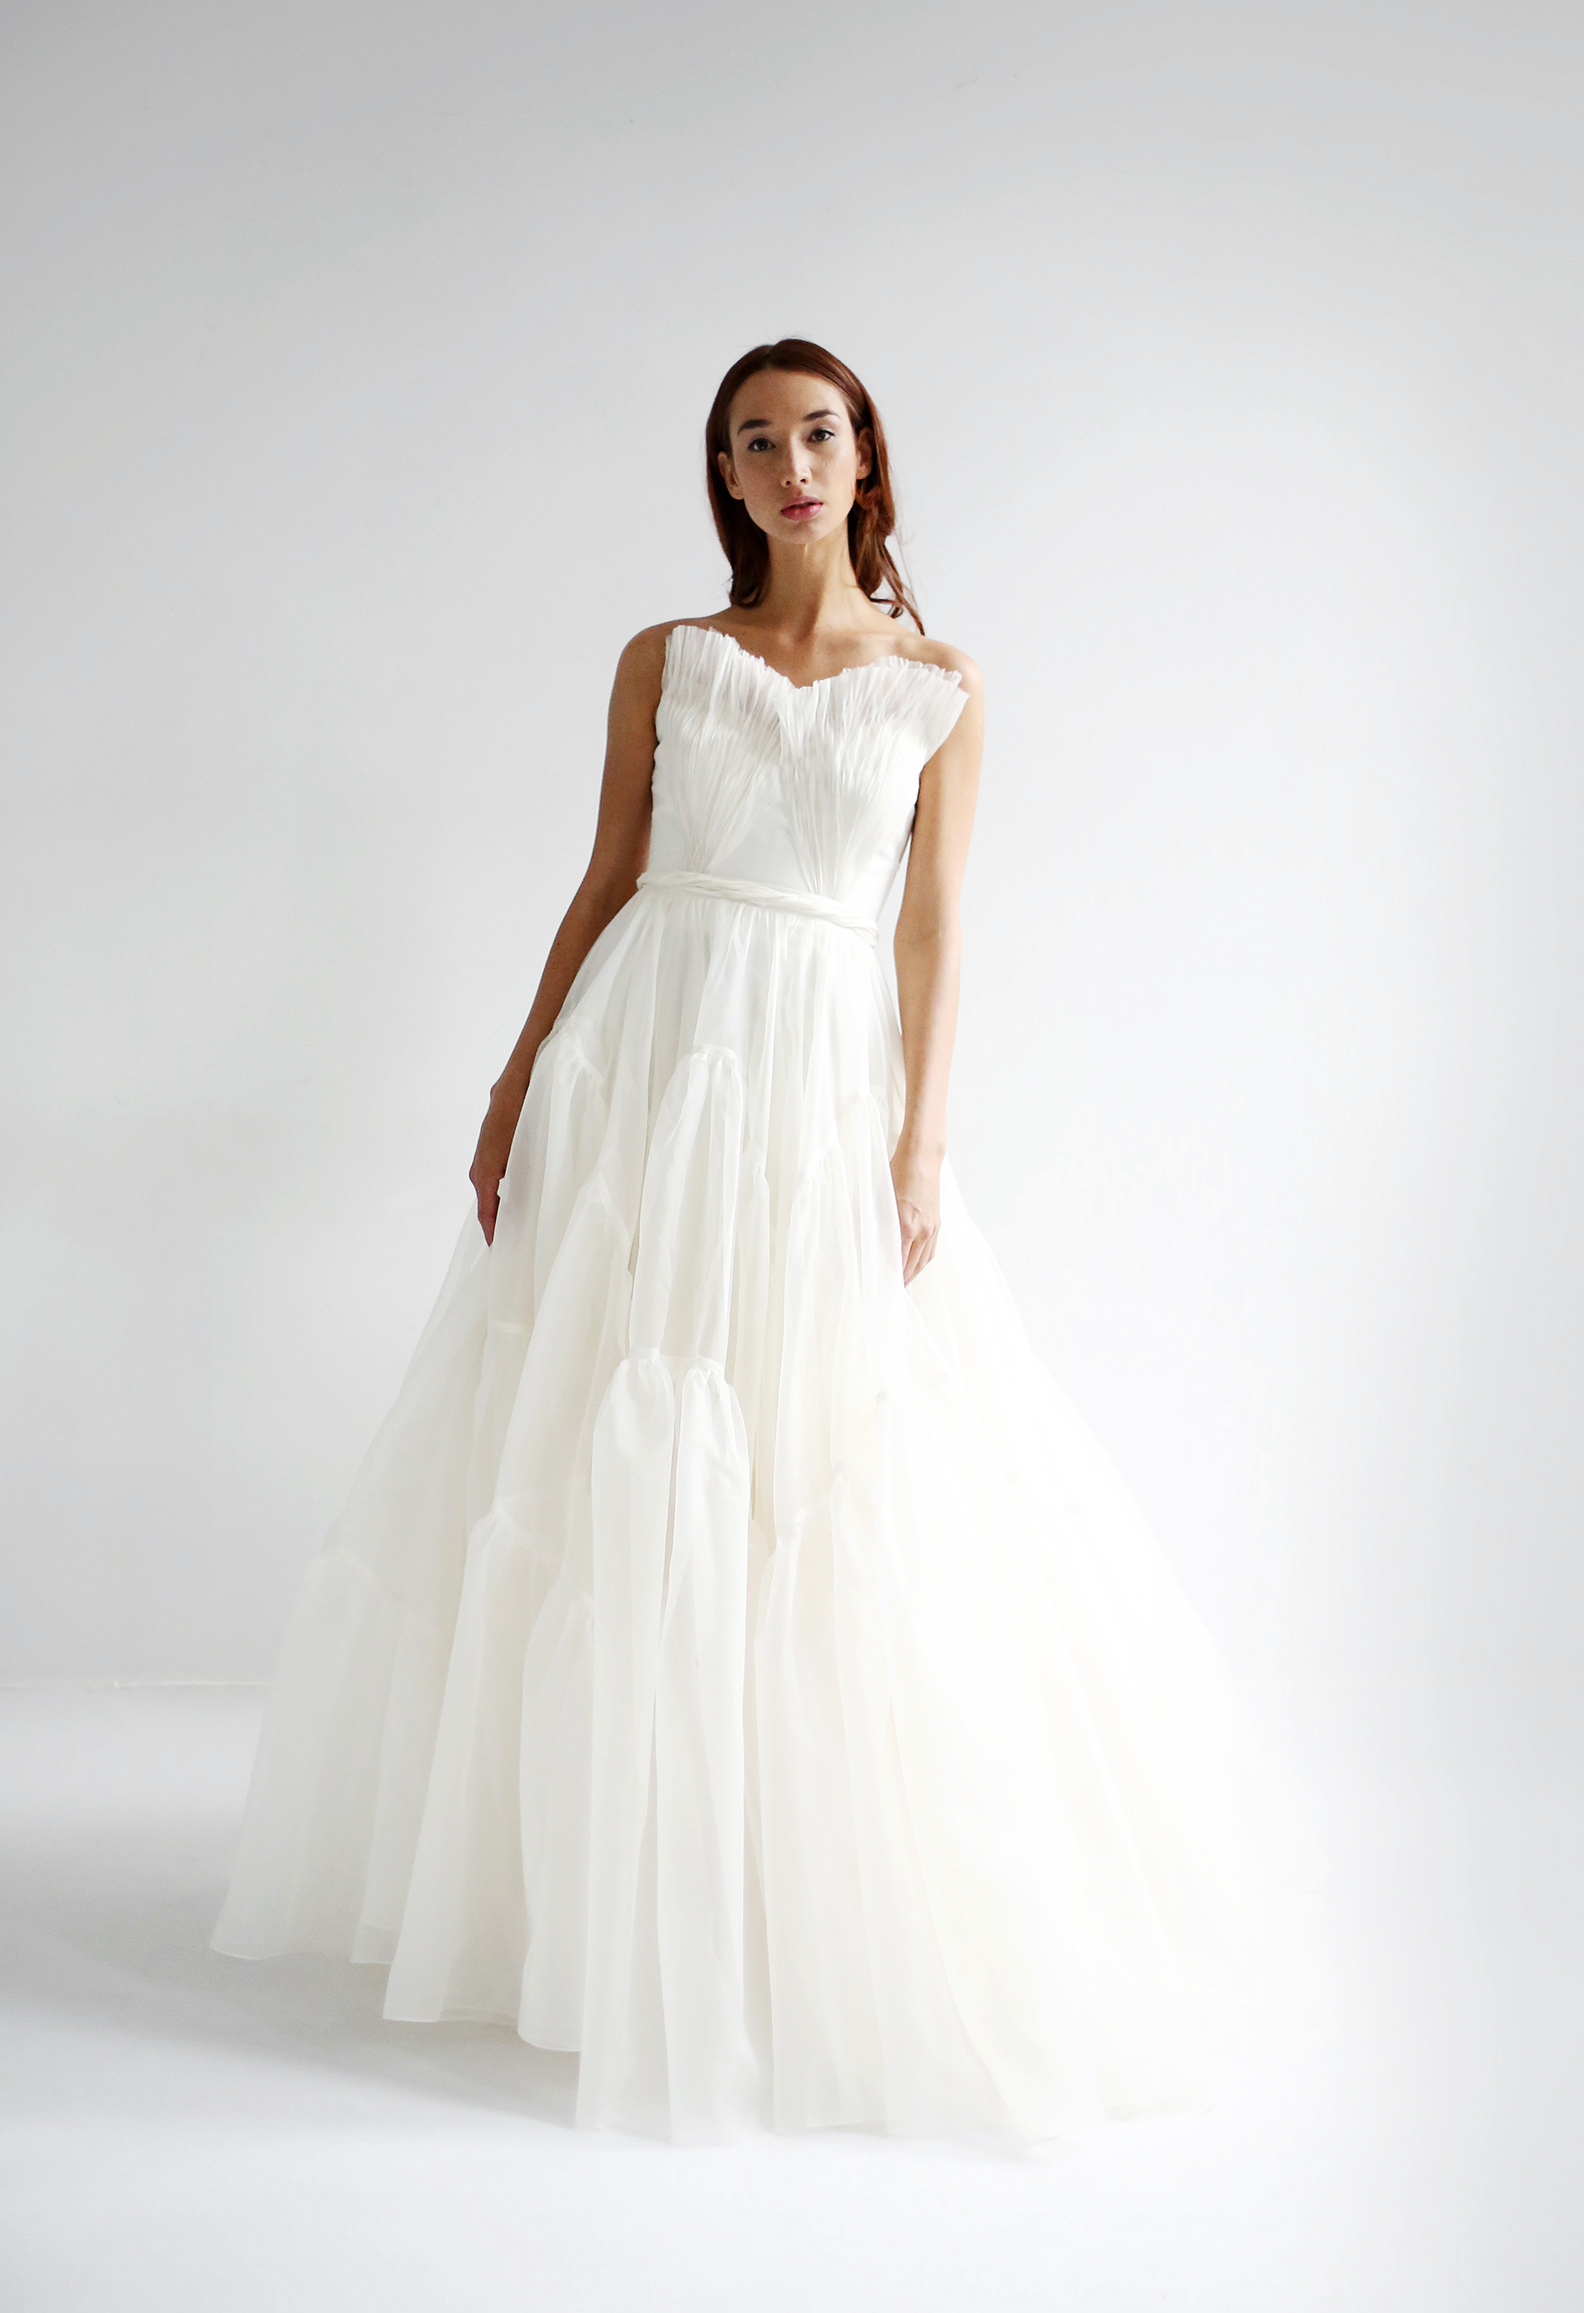 leanne marshall wedding dress spring 2019 strapless ruffles a-line